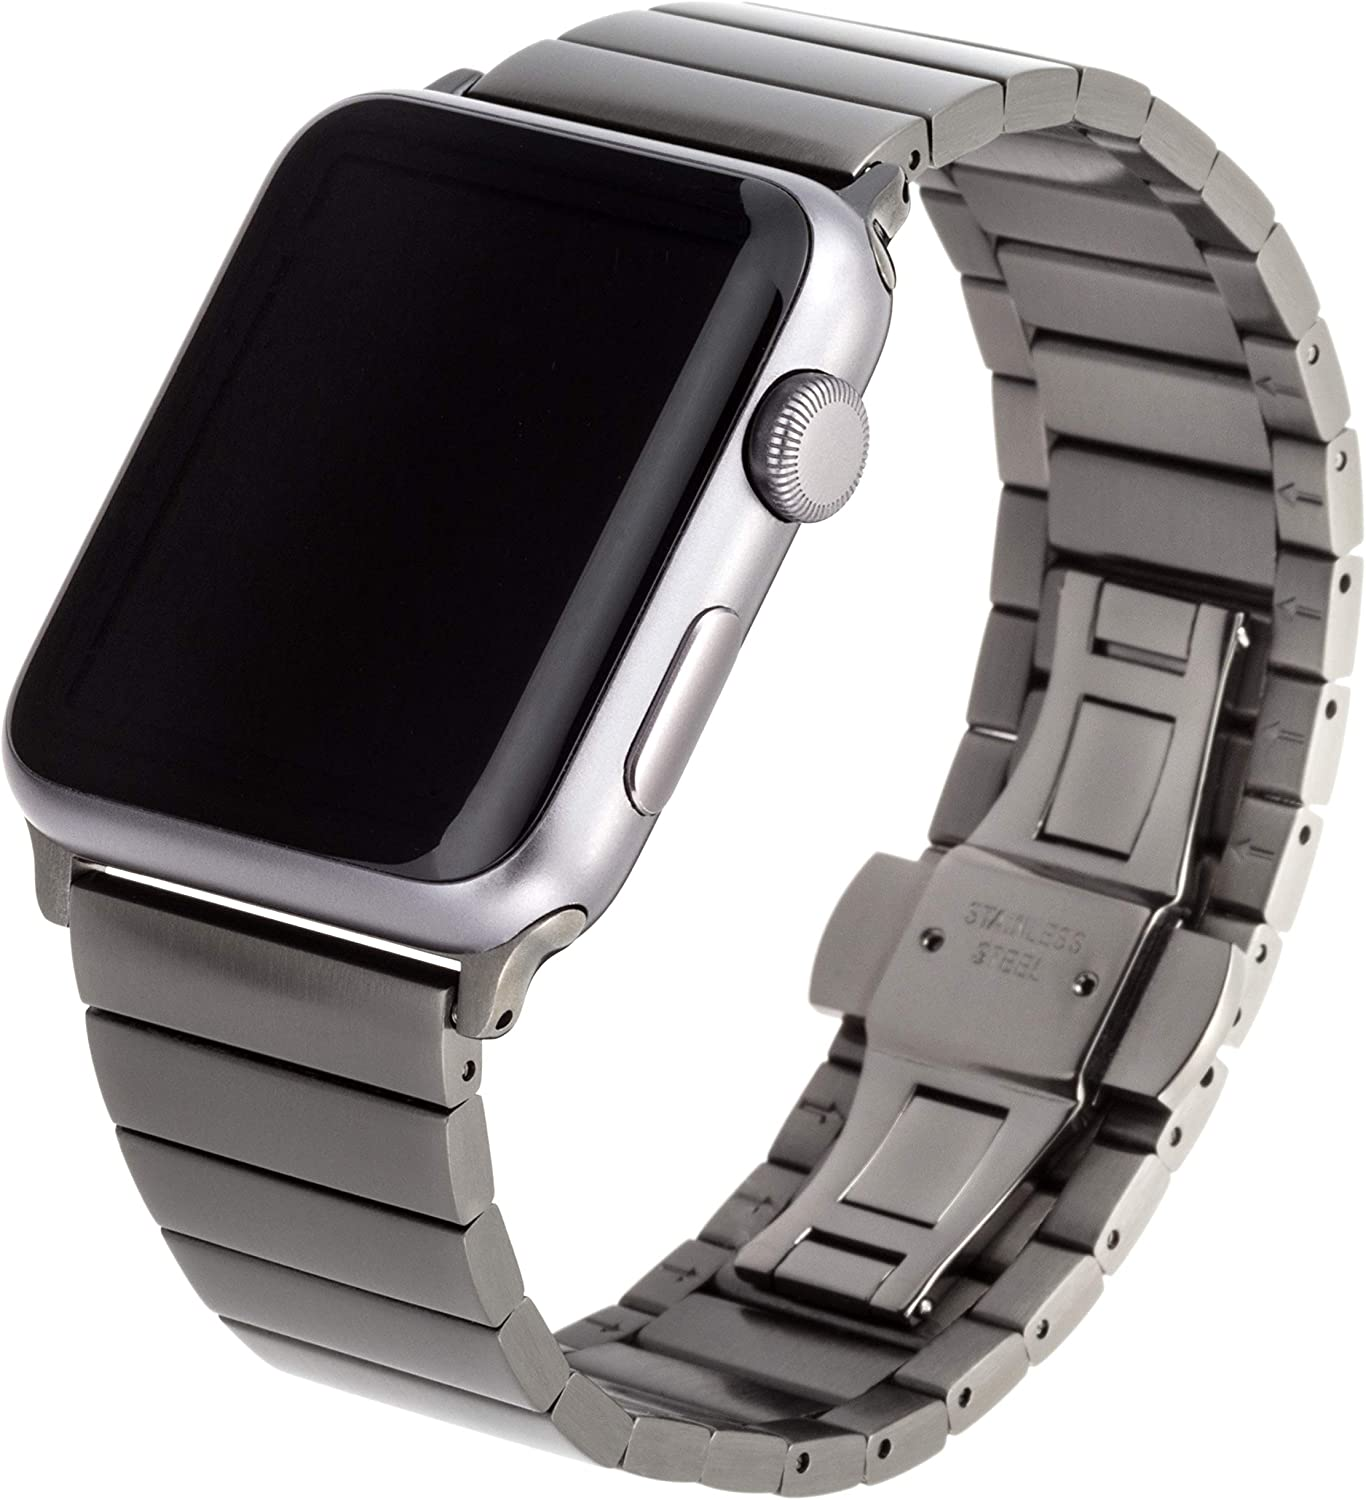 WITHit Stainless-Steel Replacement Band for Apple Watch, 42/44mm, Space Gray – Secure and Adjustable Electroplated Stainless-Steel Bracelet, Butterfly Clasp Hardware, Fits Most Wrists